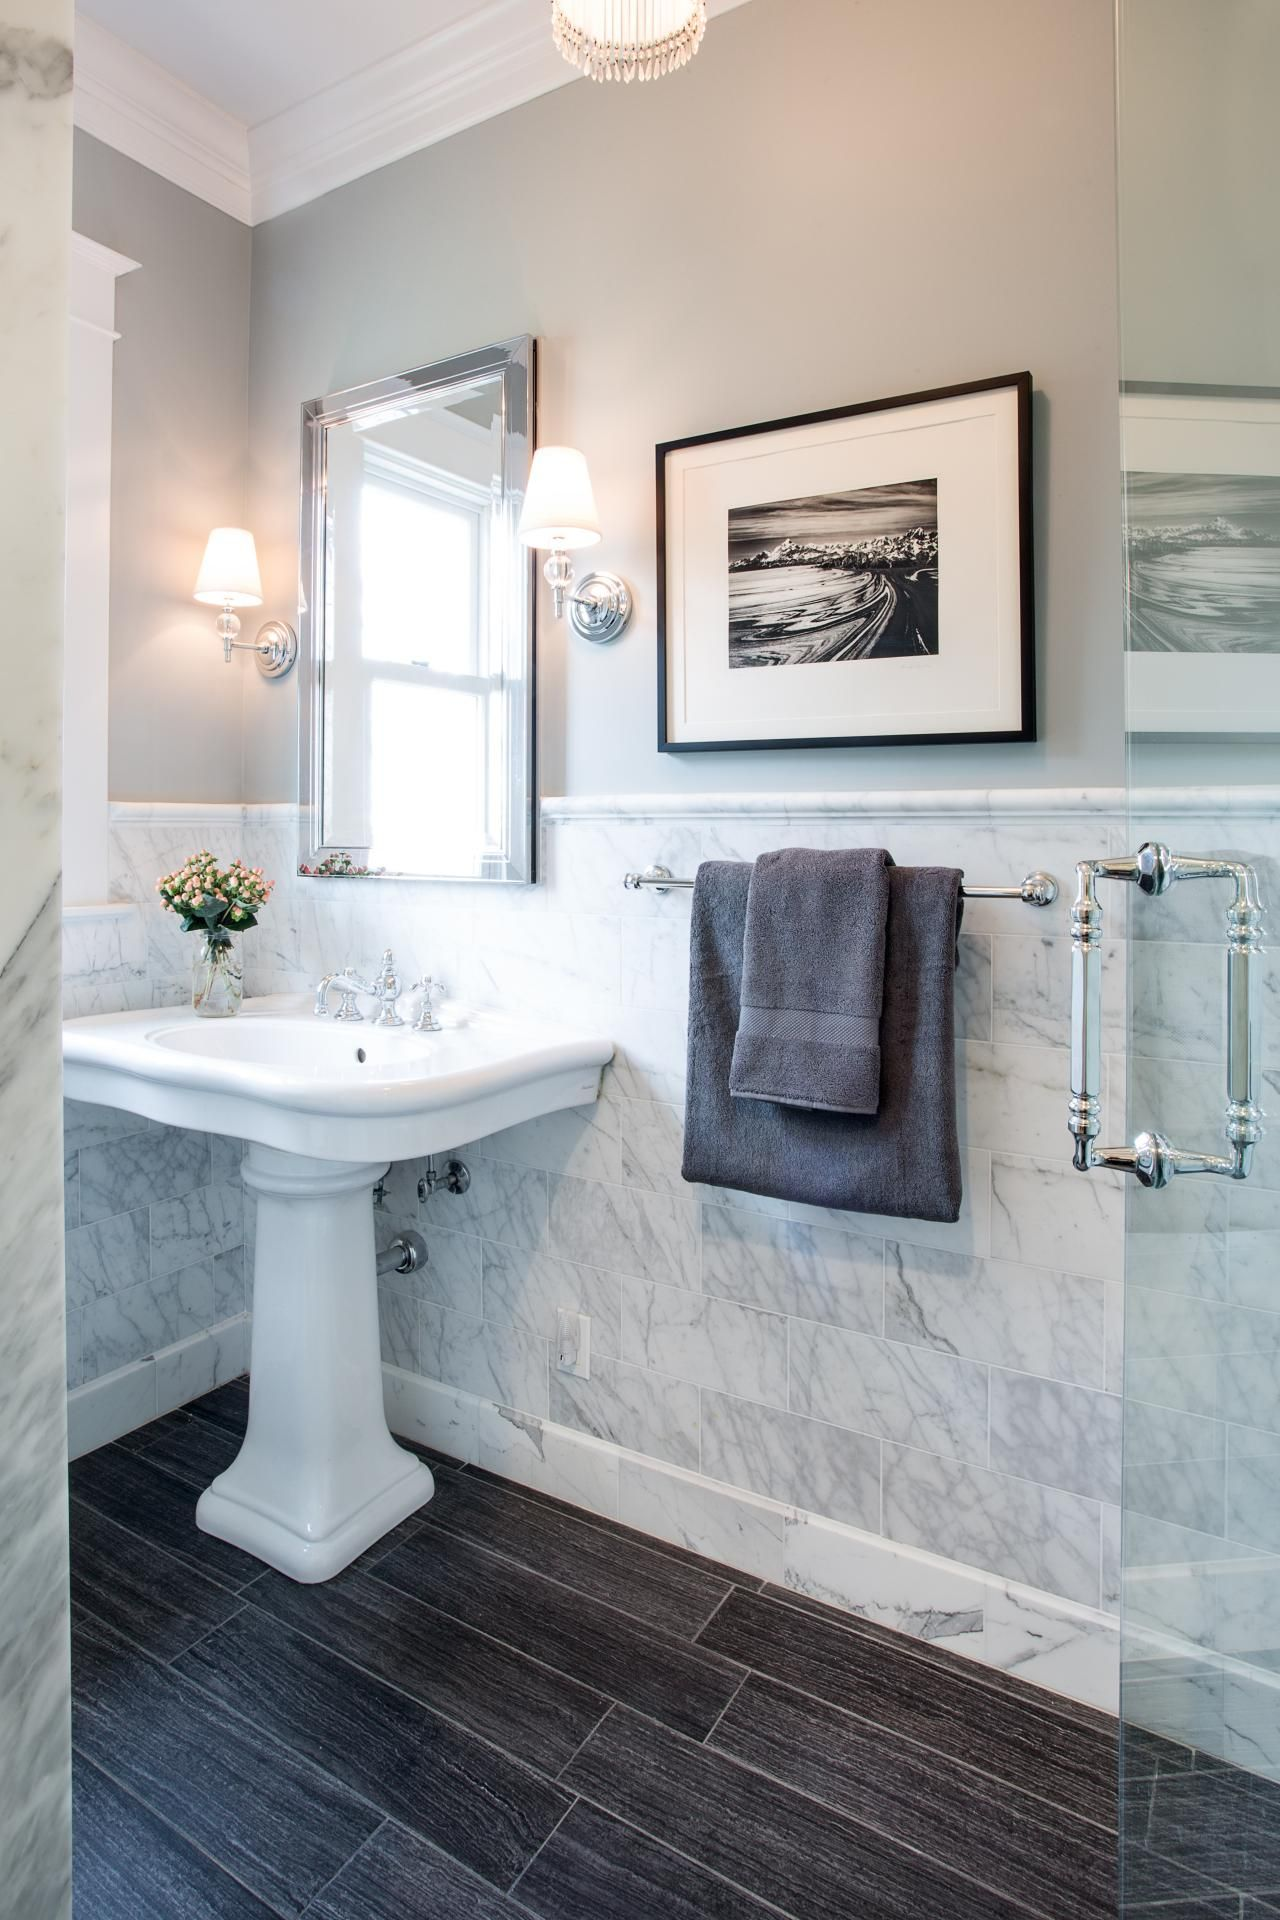 The Smooth Lines On Dark Wood Flooring Pair Beautifully With Marble Wall Tiling In This Traditional Bathroom Two Small Mounted Lamp Fixtures Frame